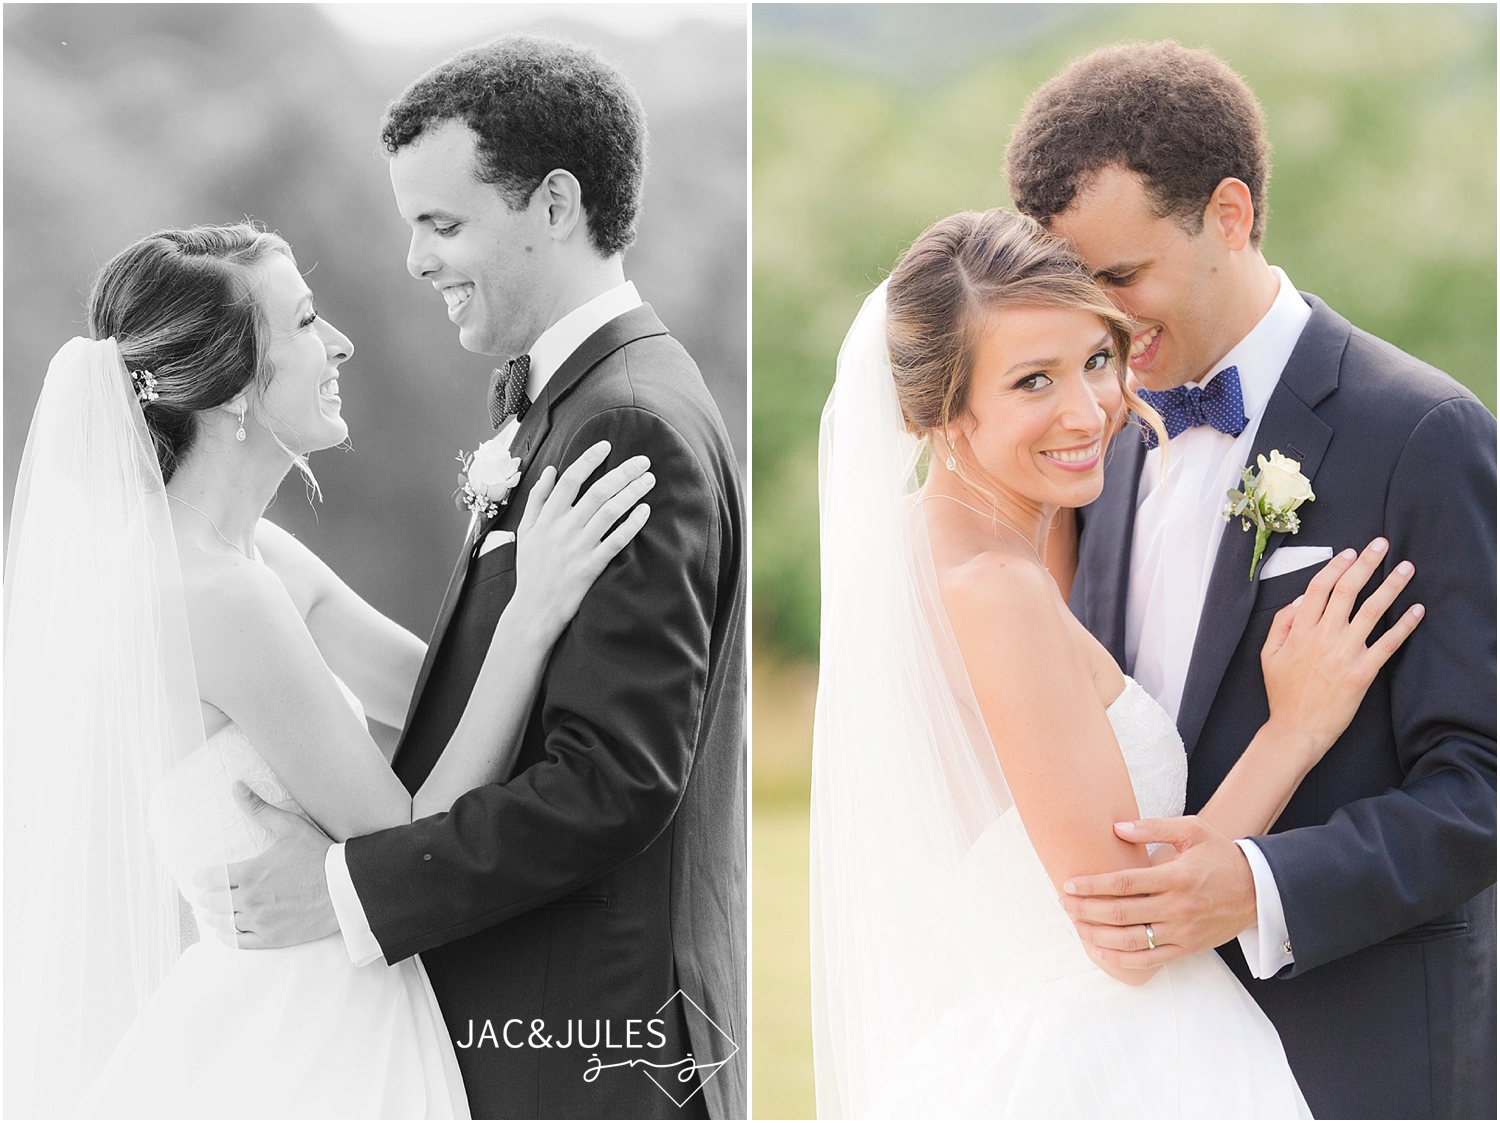 jacnjules photographs bride and groom at immaculate conception in annandale nj